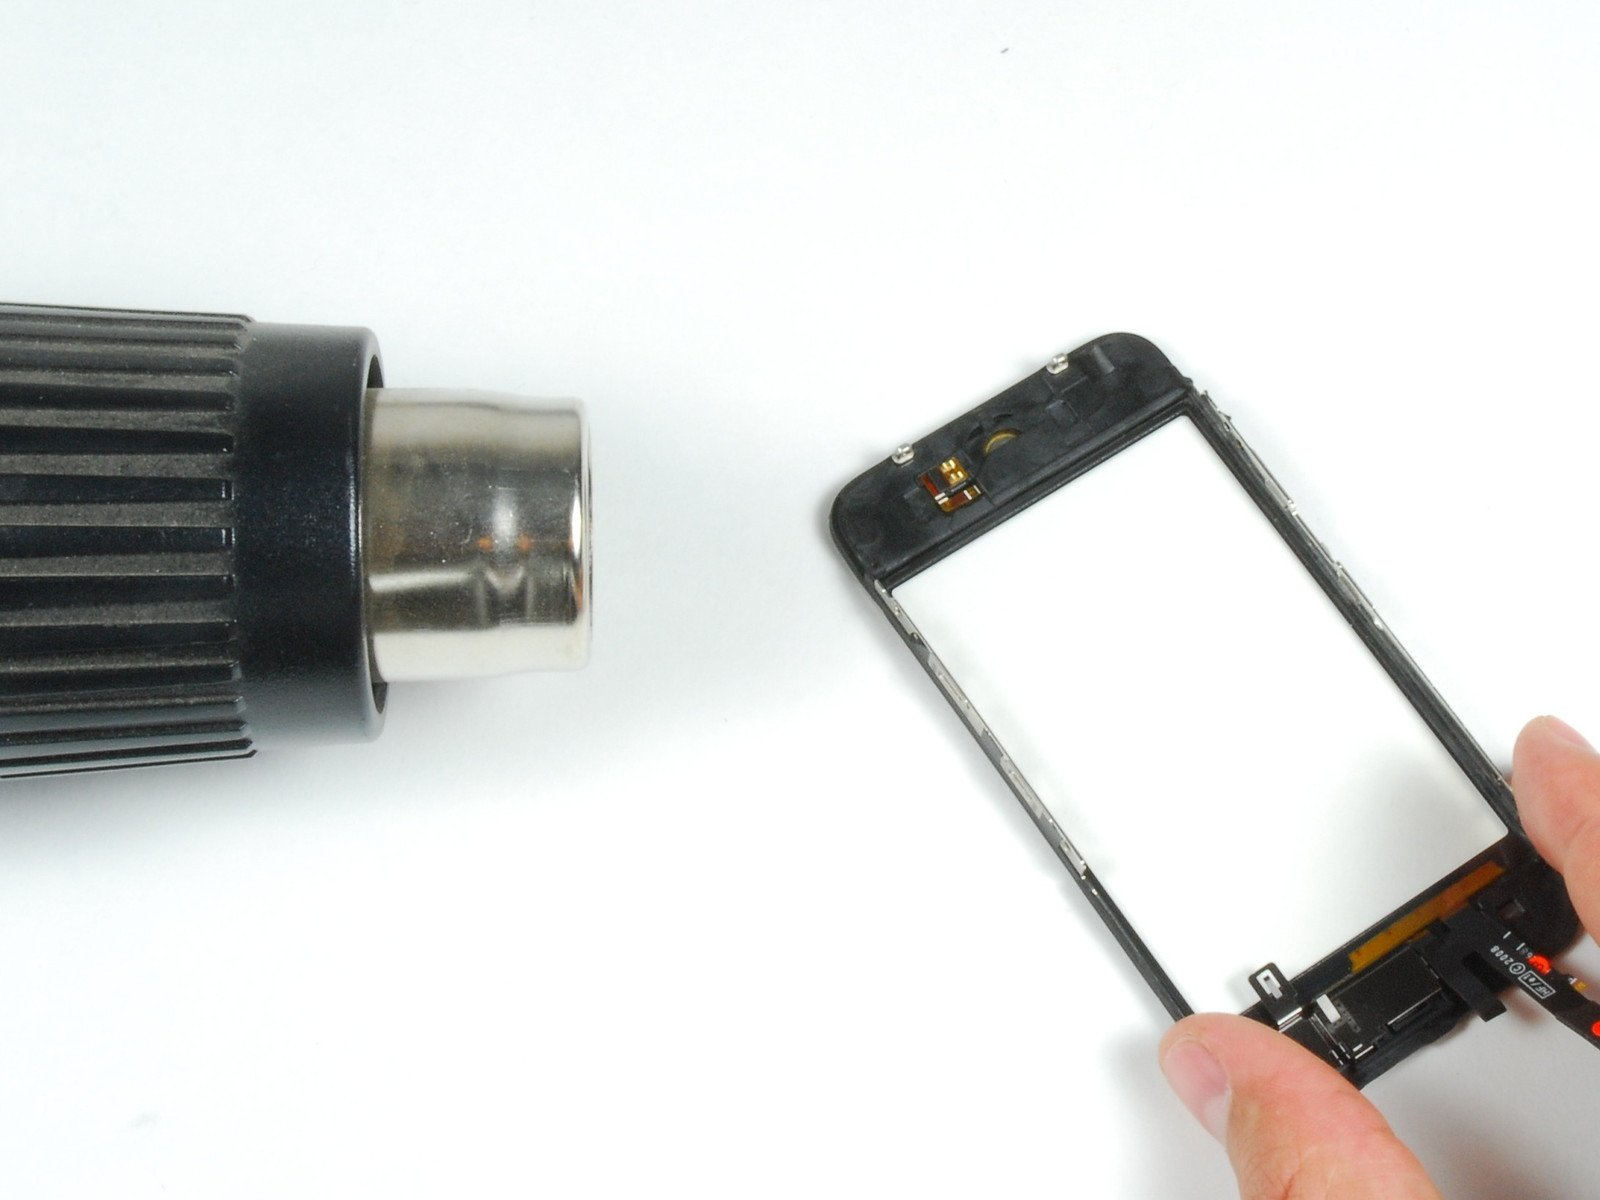 Iphone 3gs adesive strips